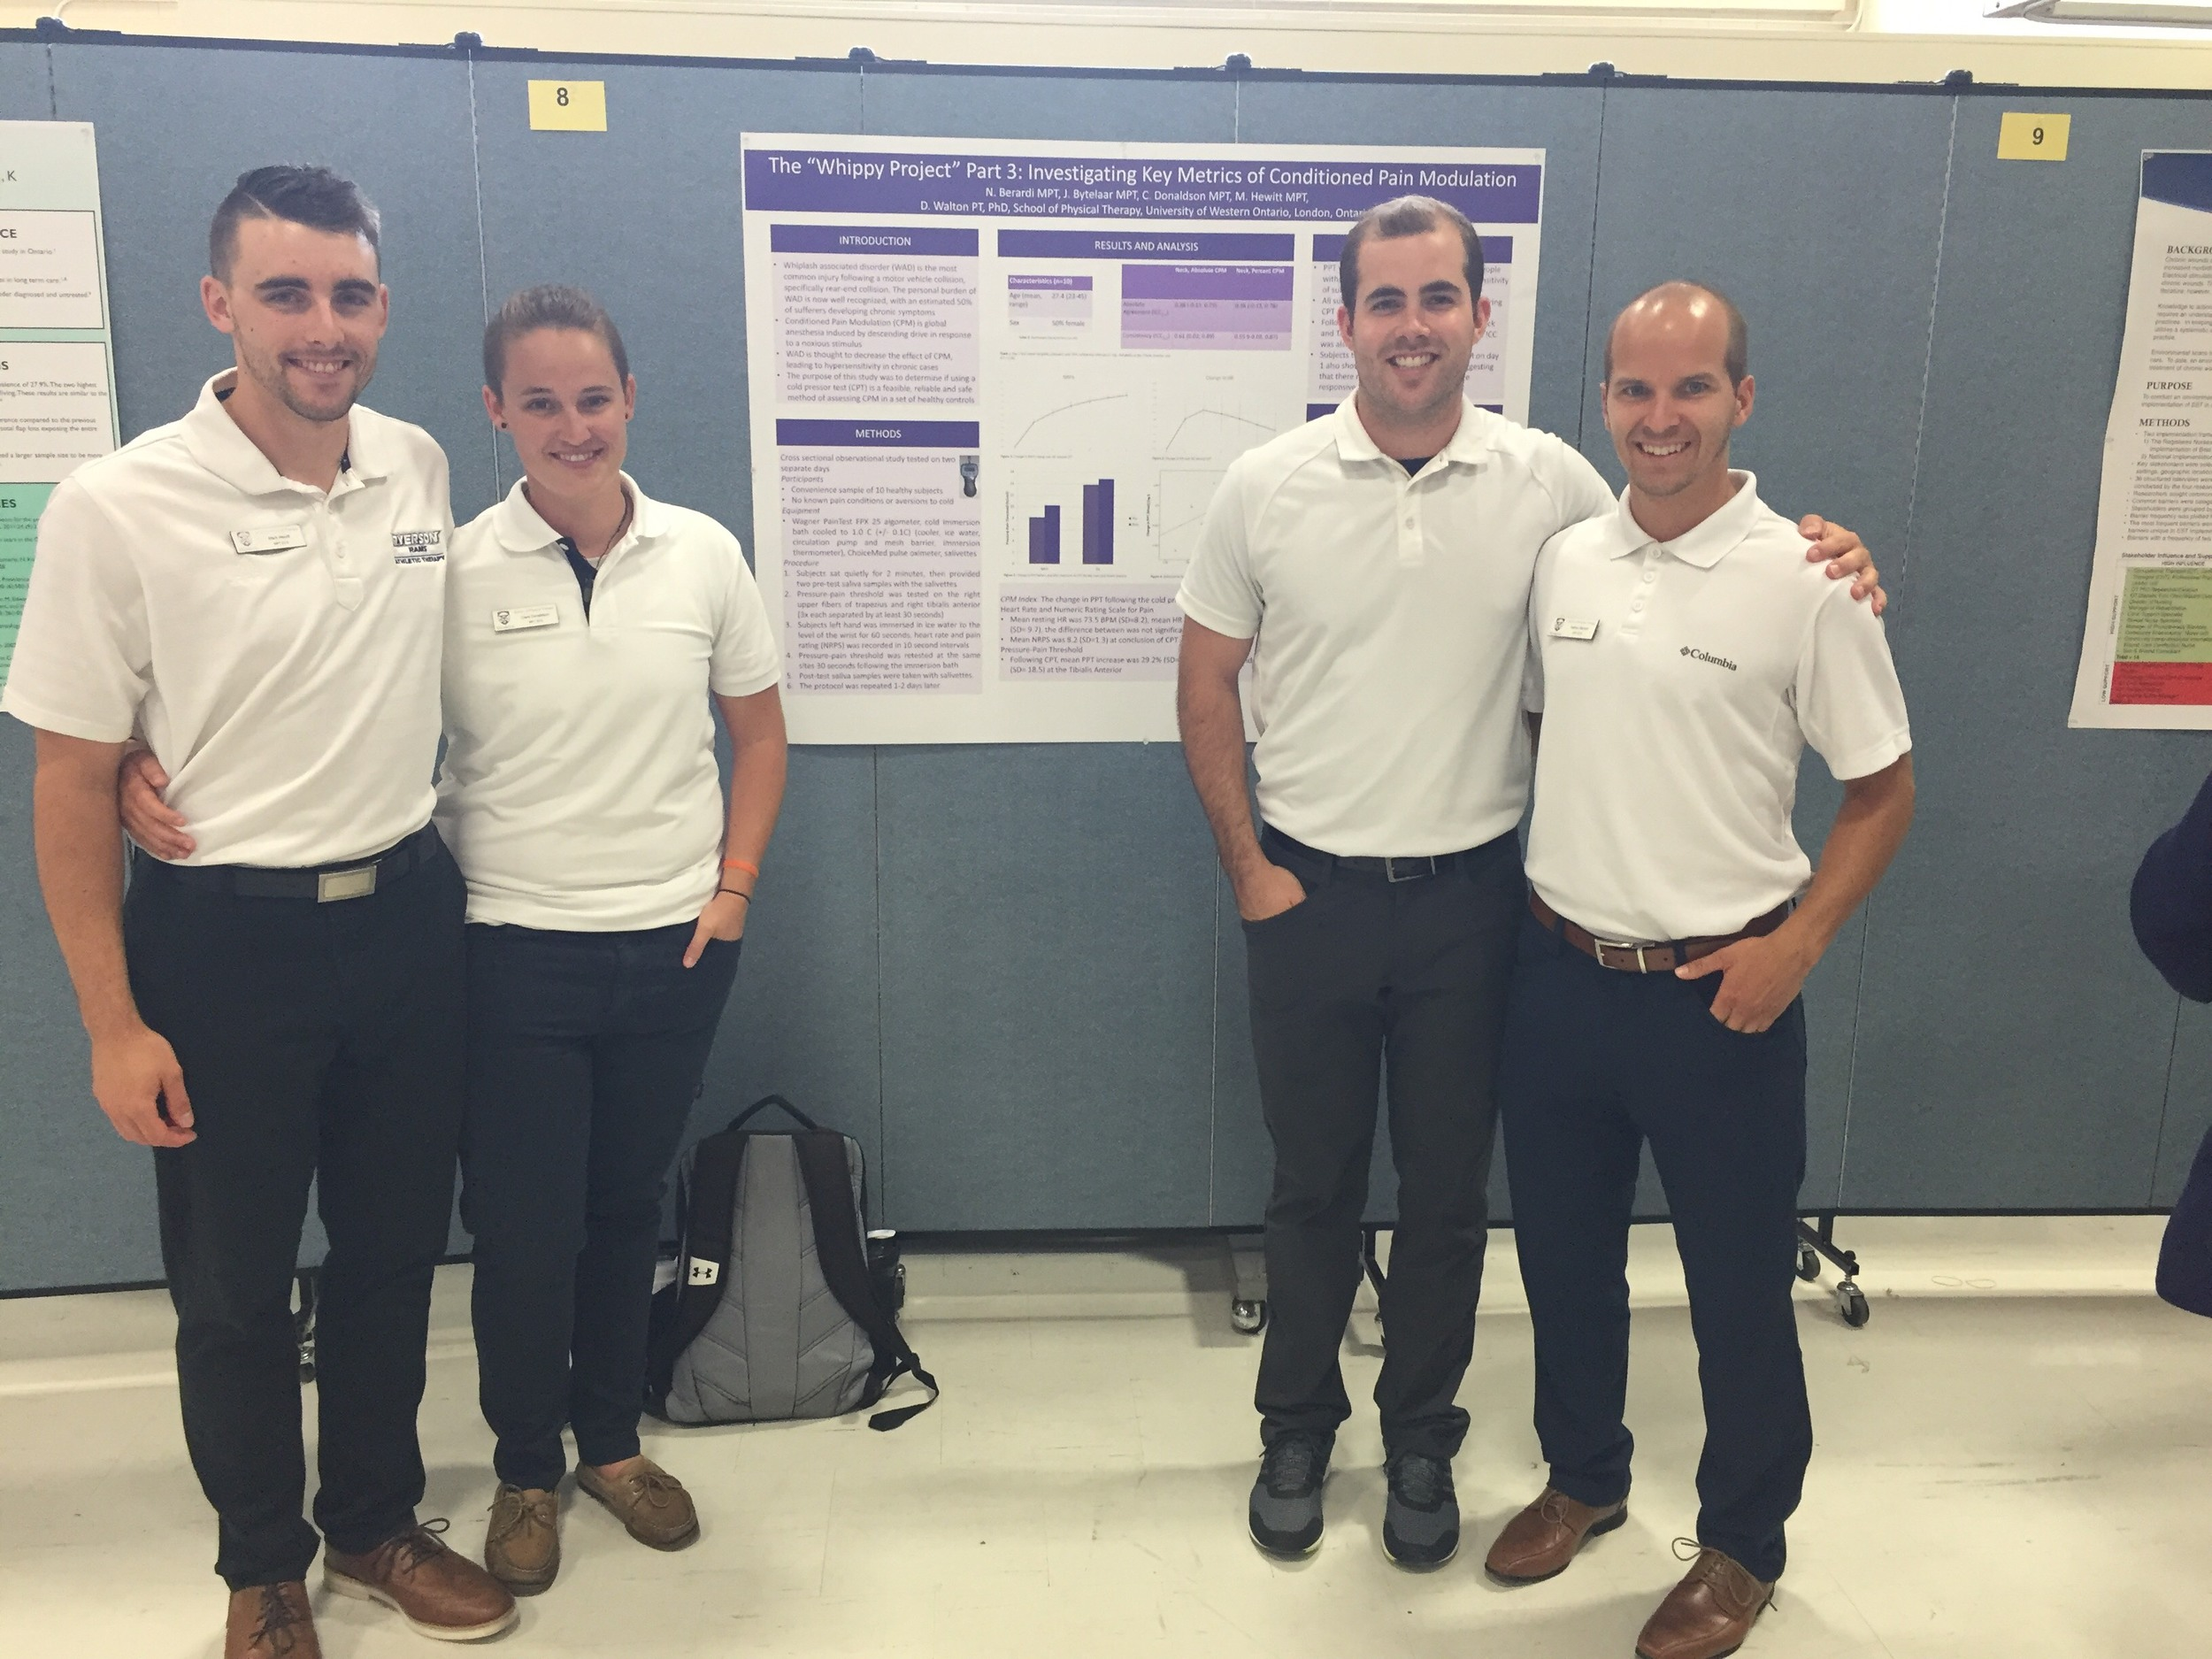 Mark Hewitt, Claire Donaldson, Jordan Bytelaar and Nathan Berardi presented their exploration of the measurement properties of pressure pain threshold and conditioned pain modulation including physiological measures of distress as part of the 'Whippy' whiplash simulation project currently under development.